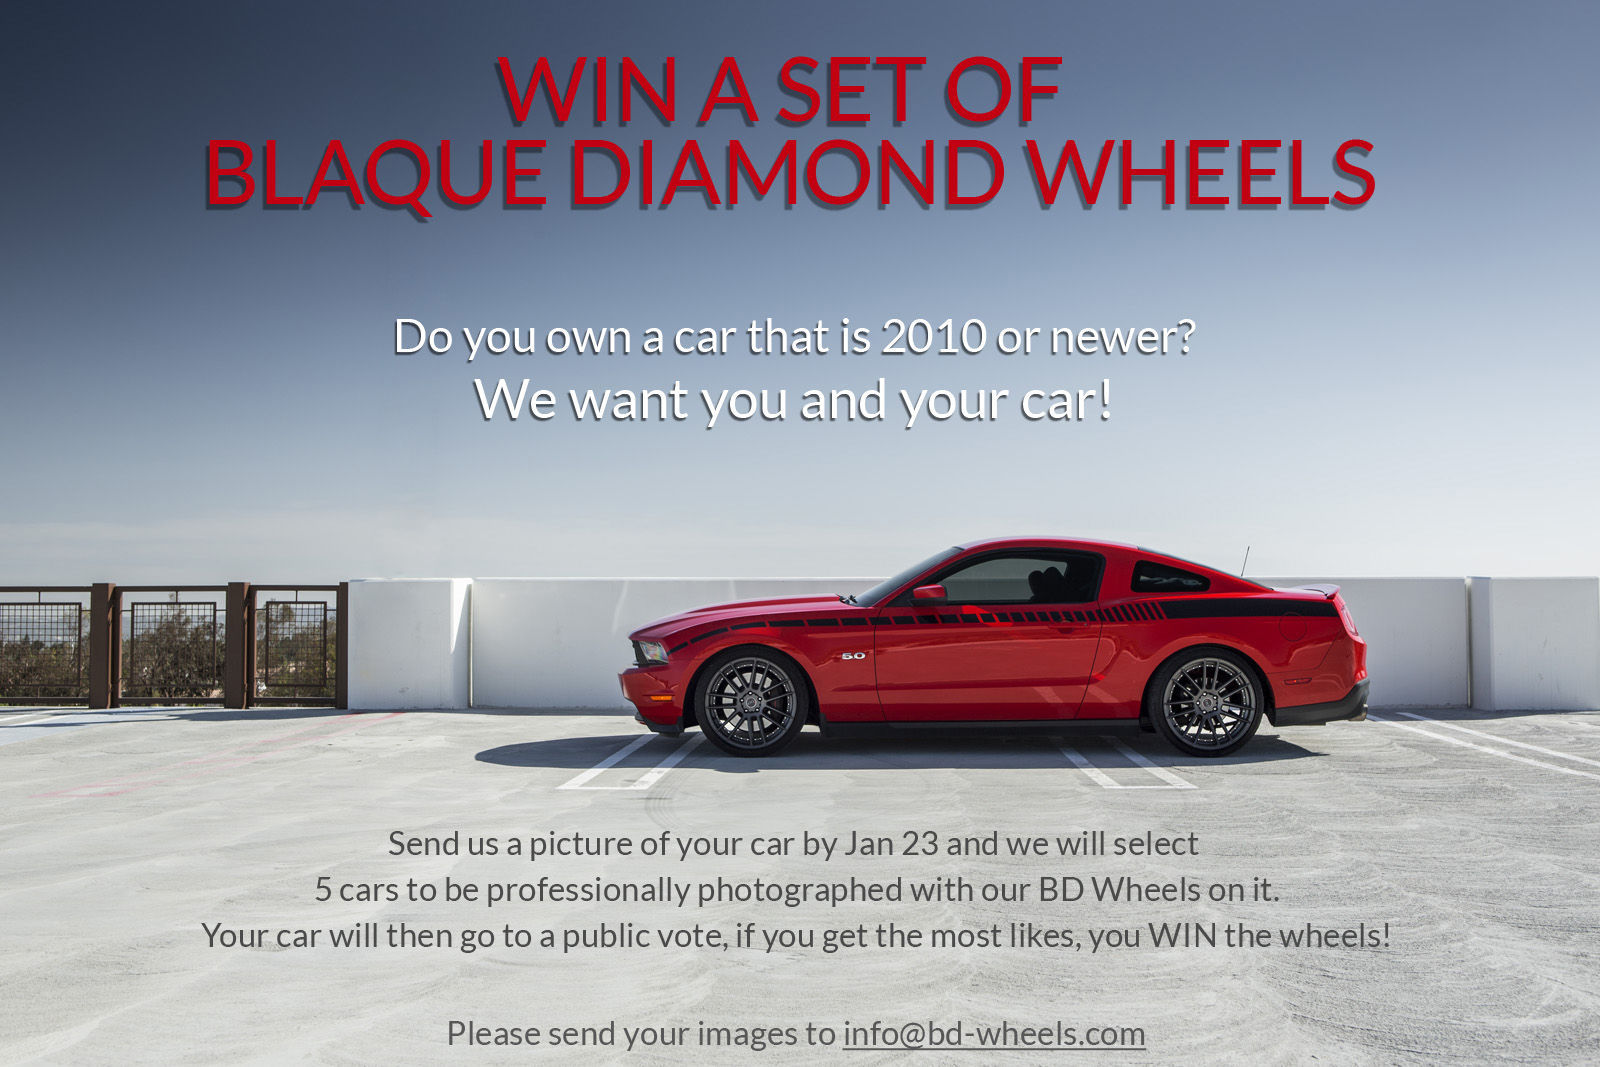 | COMPETETION TIME - Win a Set of Blaque Diamond Wheels